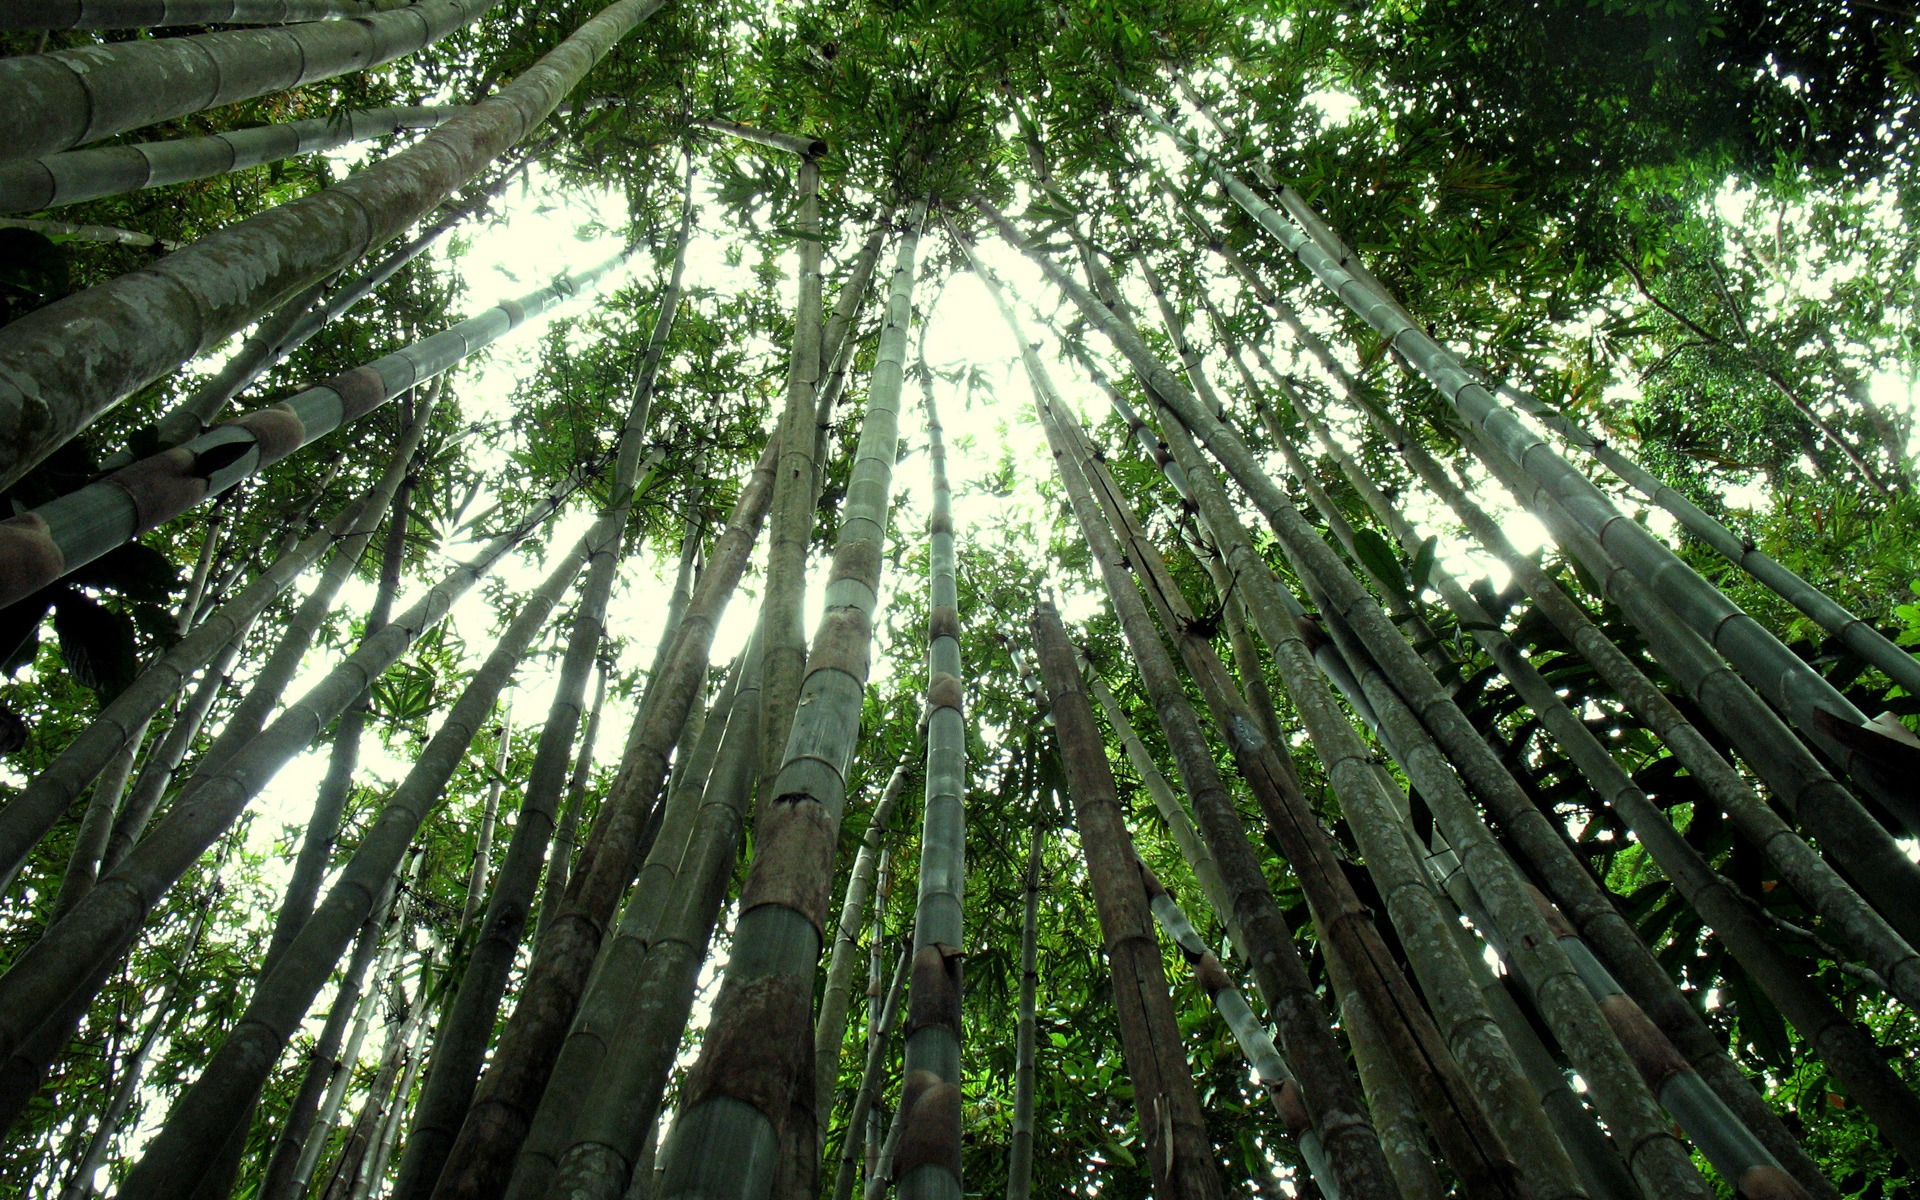 bamboo on forest images free wallpapers download